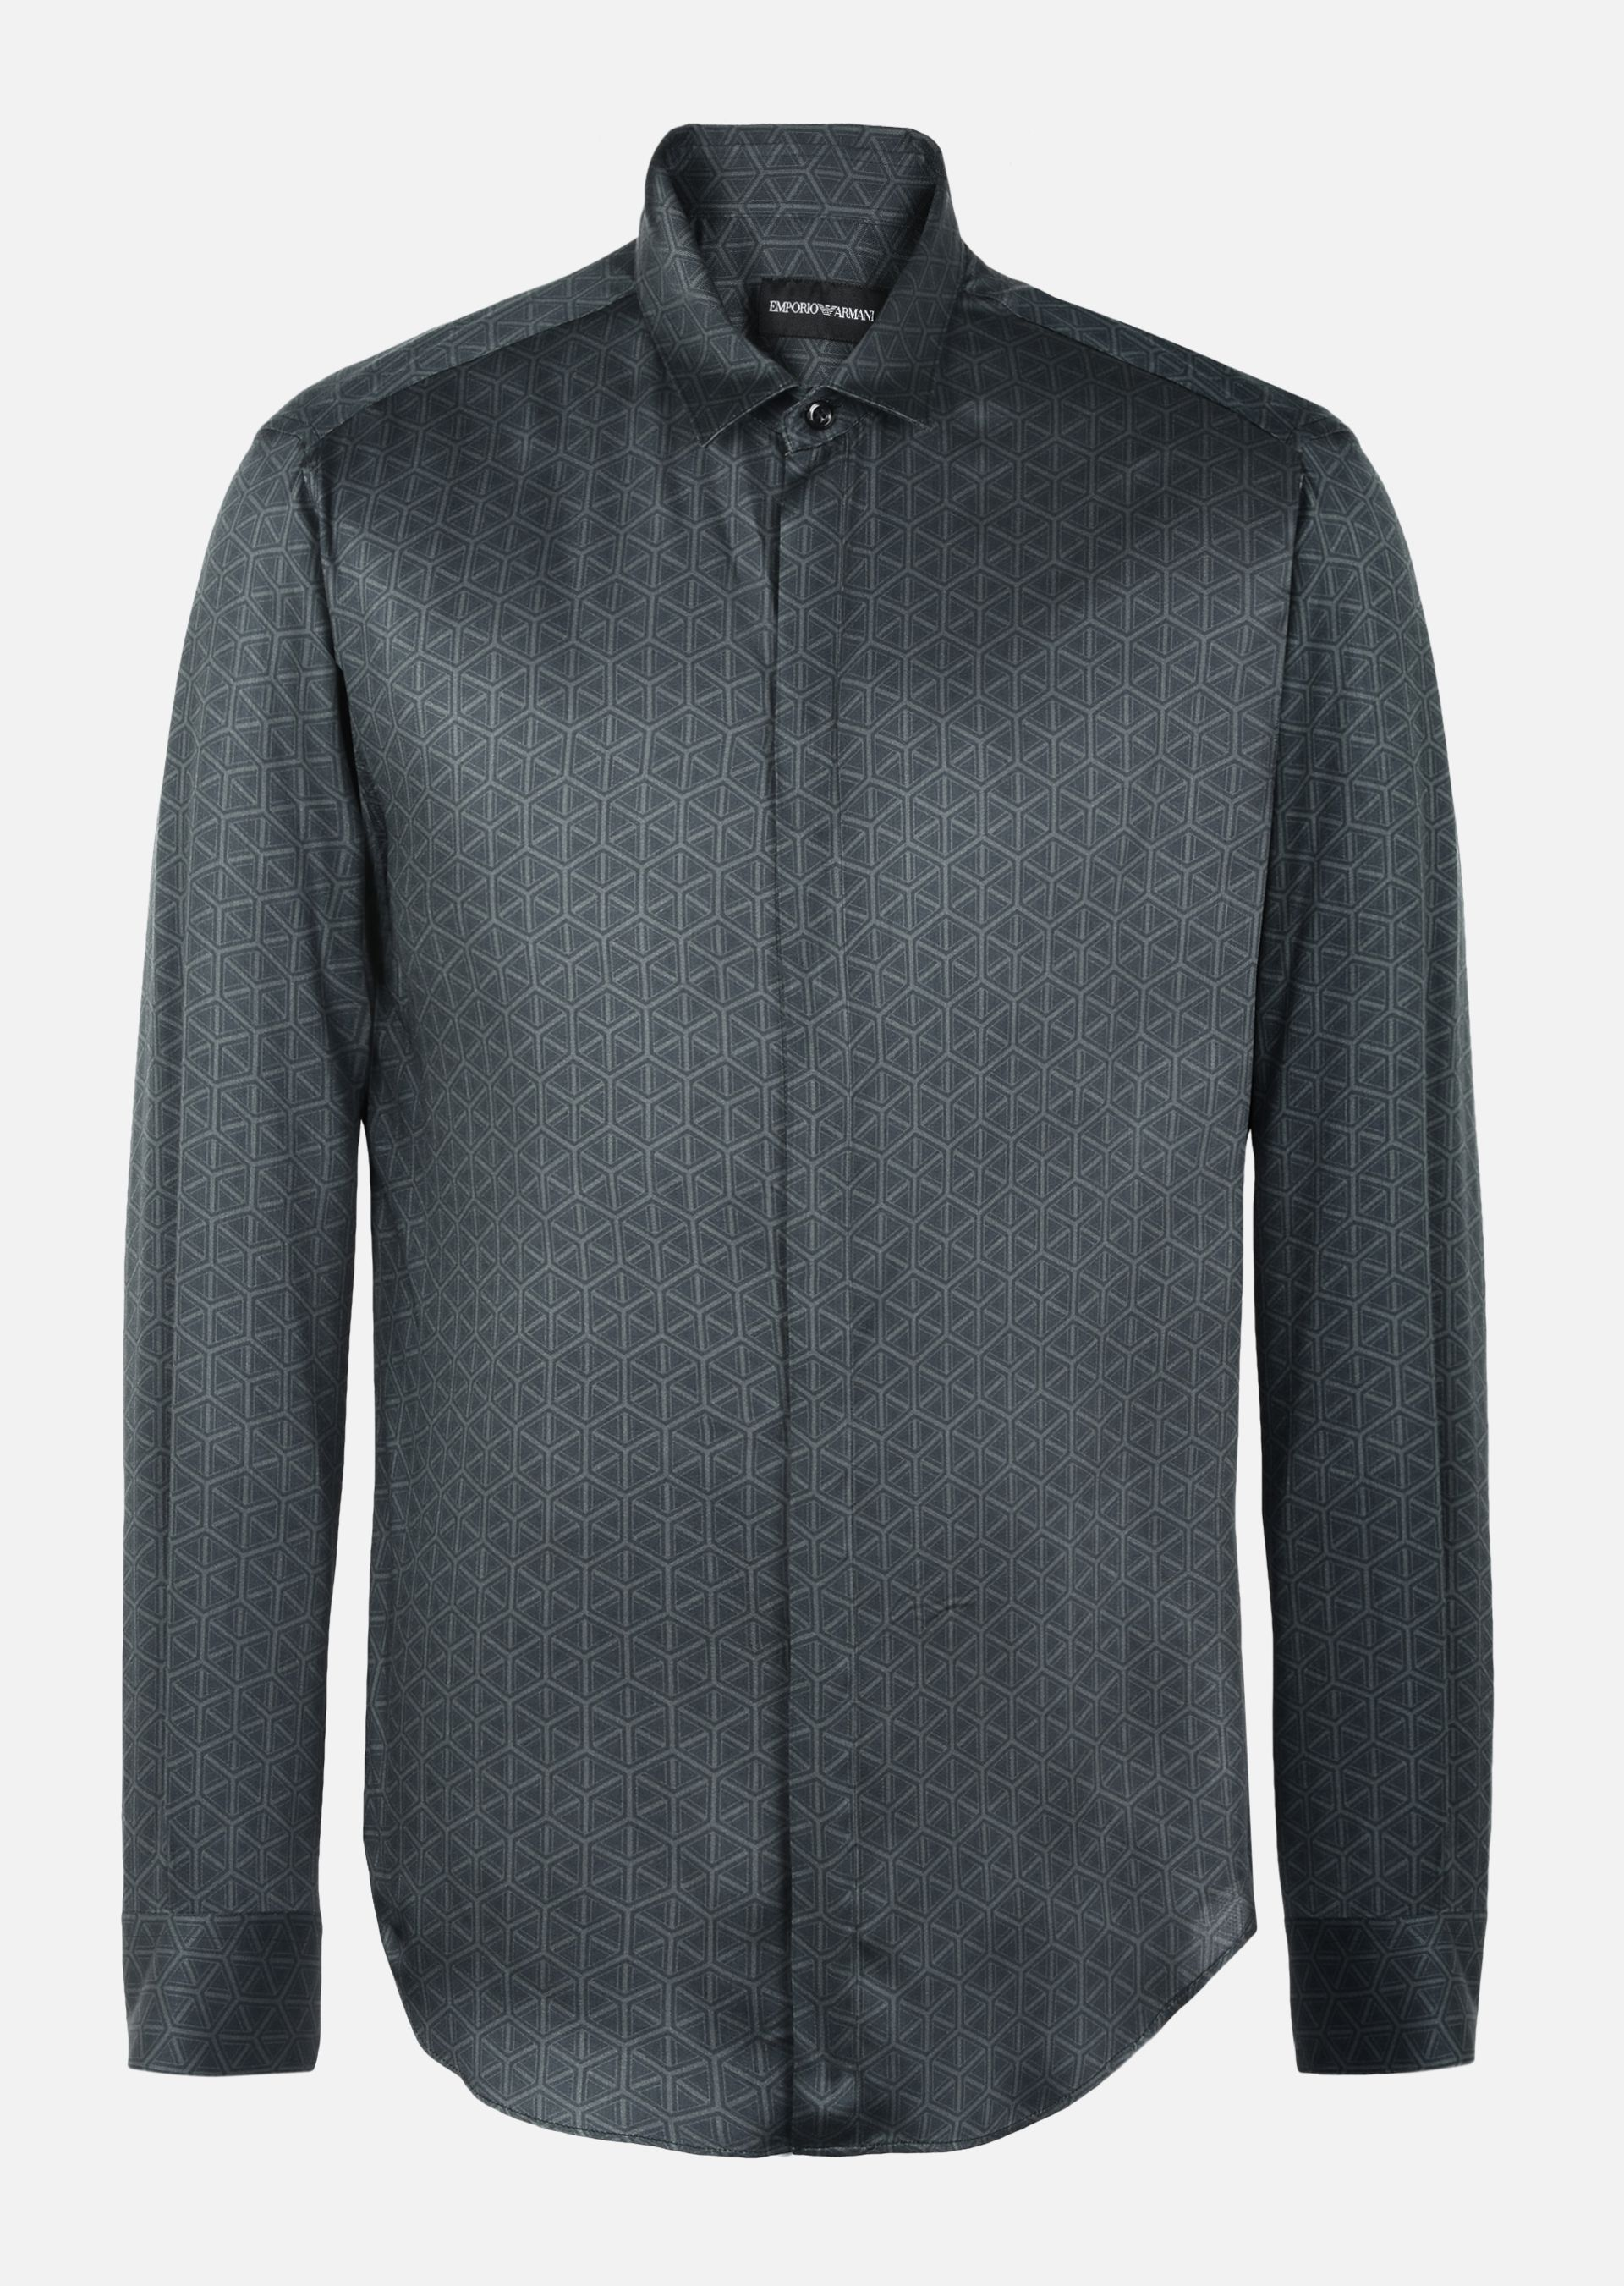 GEOMETRIC PATTERNED SHIRT WITH ITALIAN COLLAR for Men | Emporio Armani